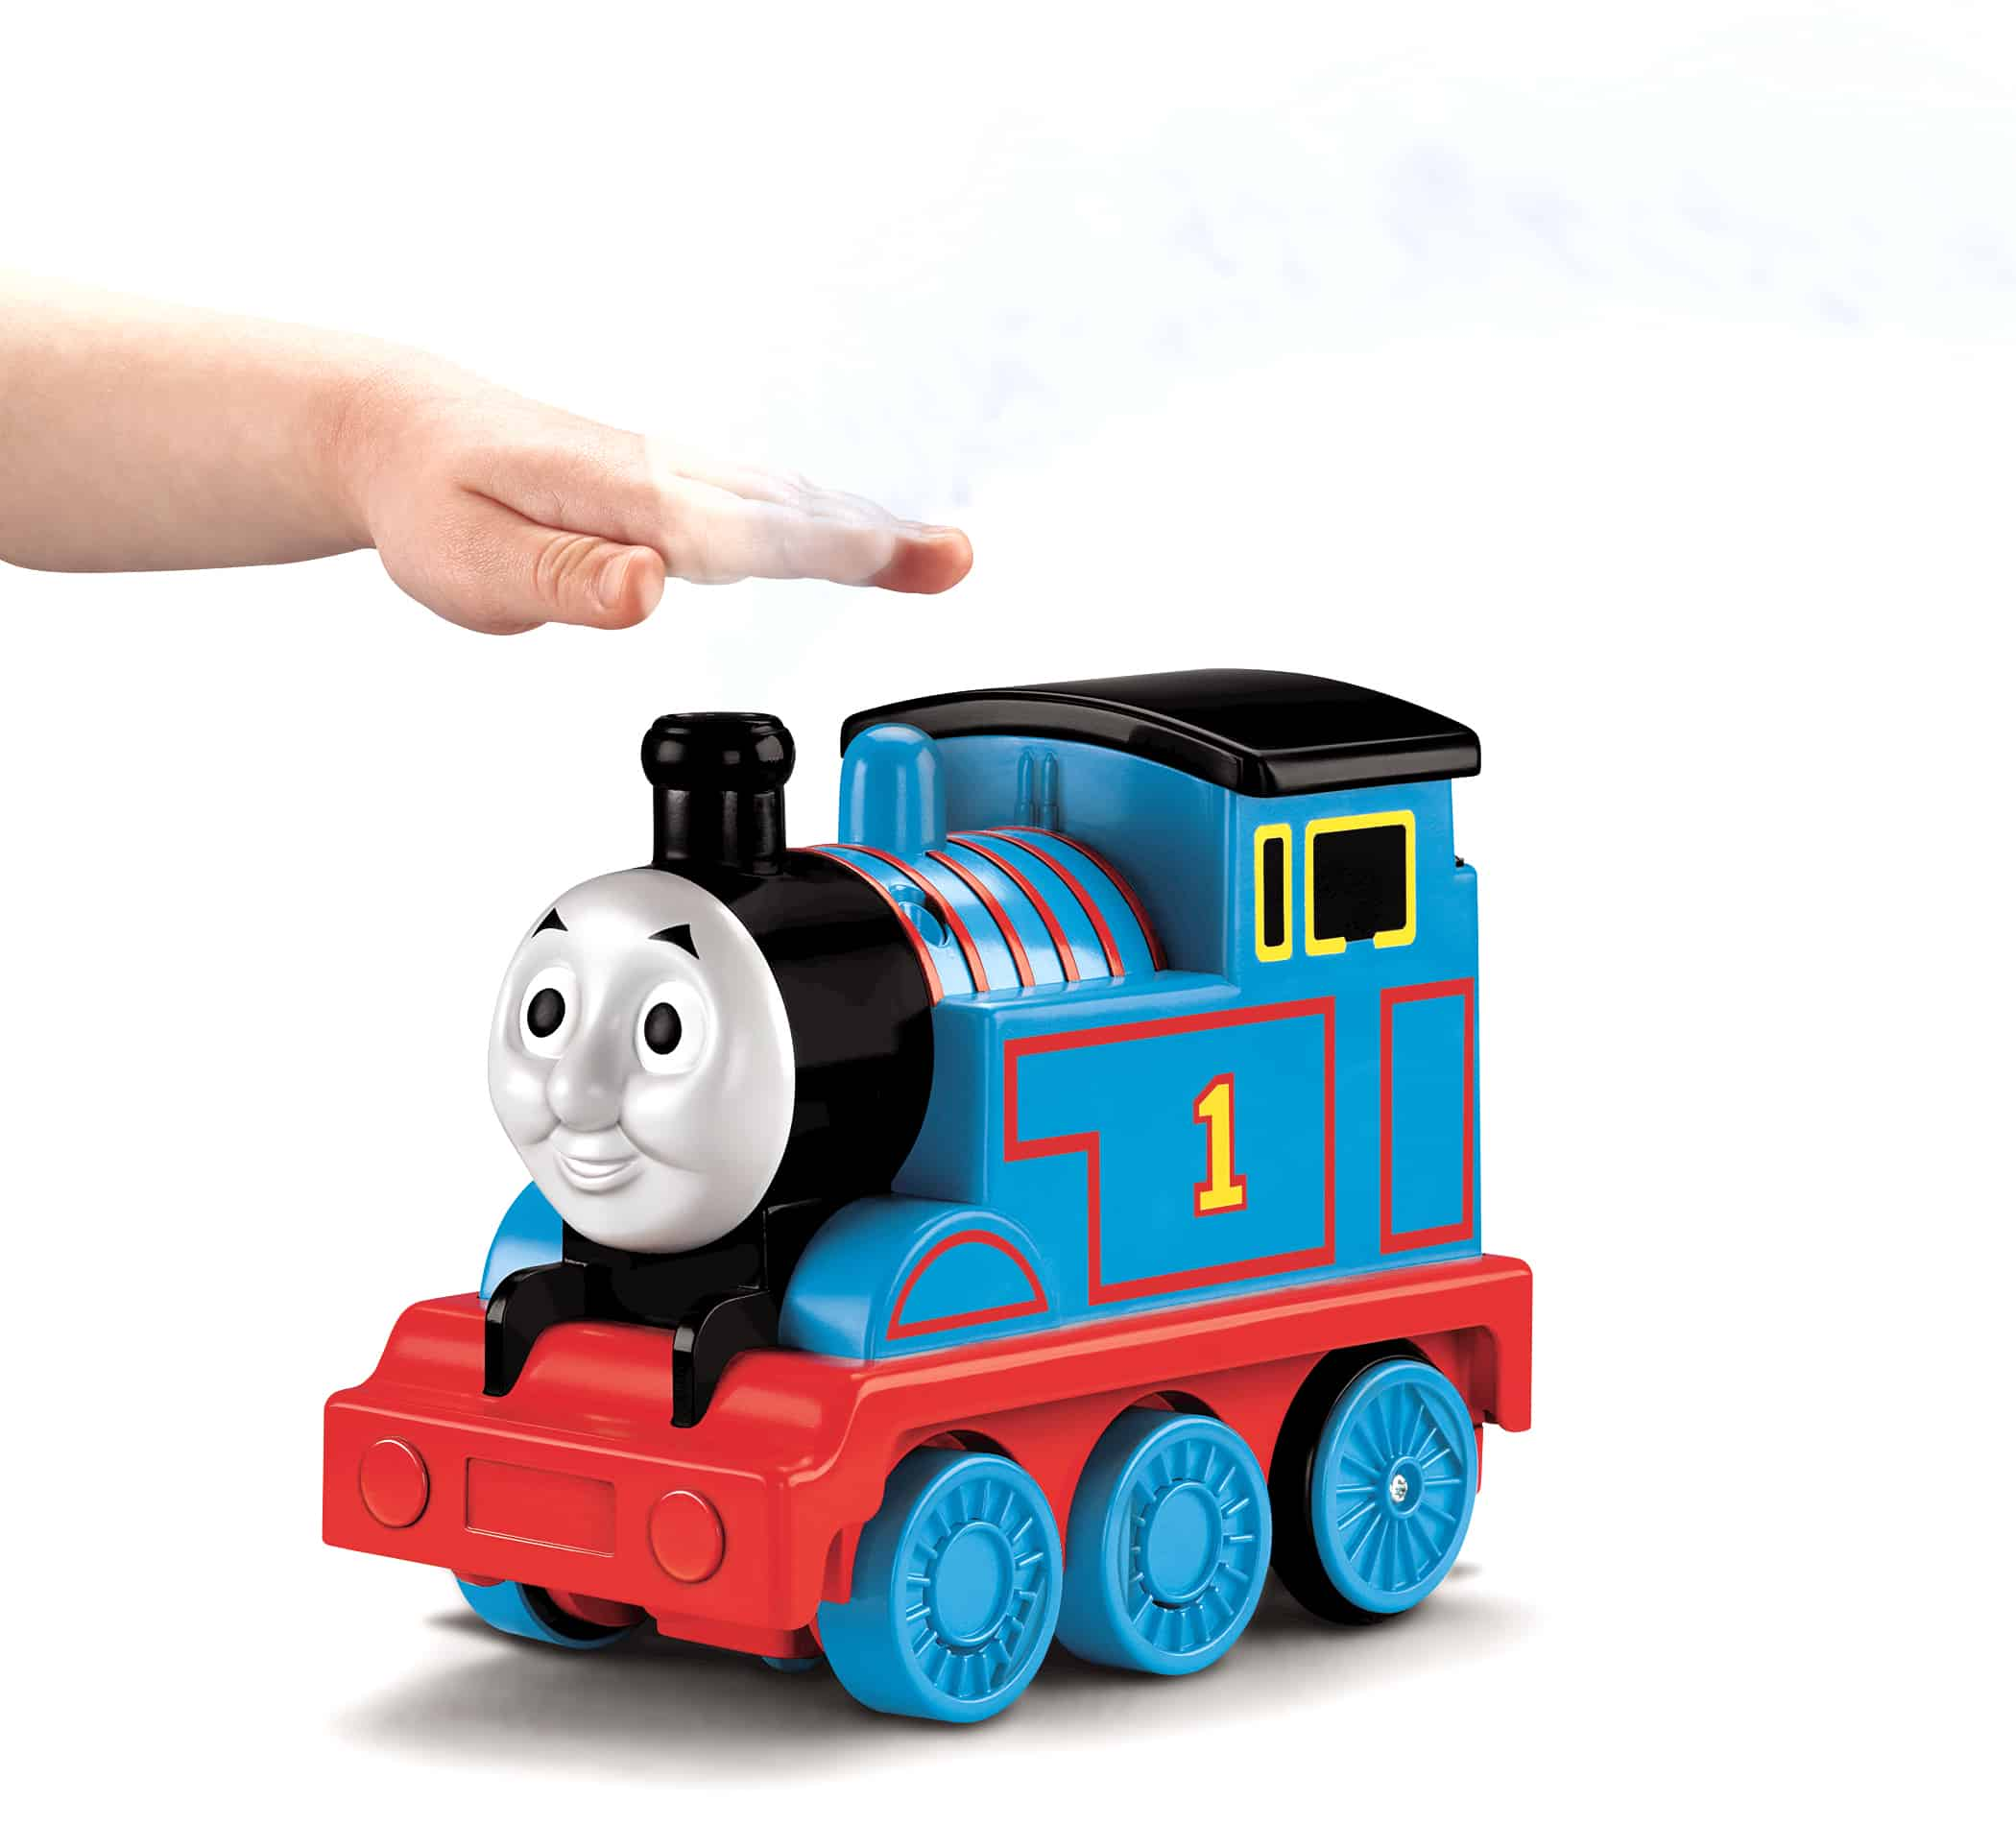 Enter to WIN a Thomas & Friends STEAM N' SPEED Remote Control Thomas plus a $500 Thomas Prize Pack #giveaway